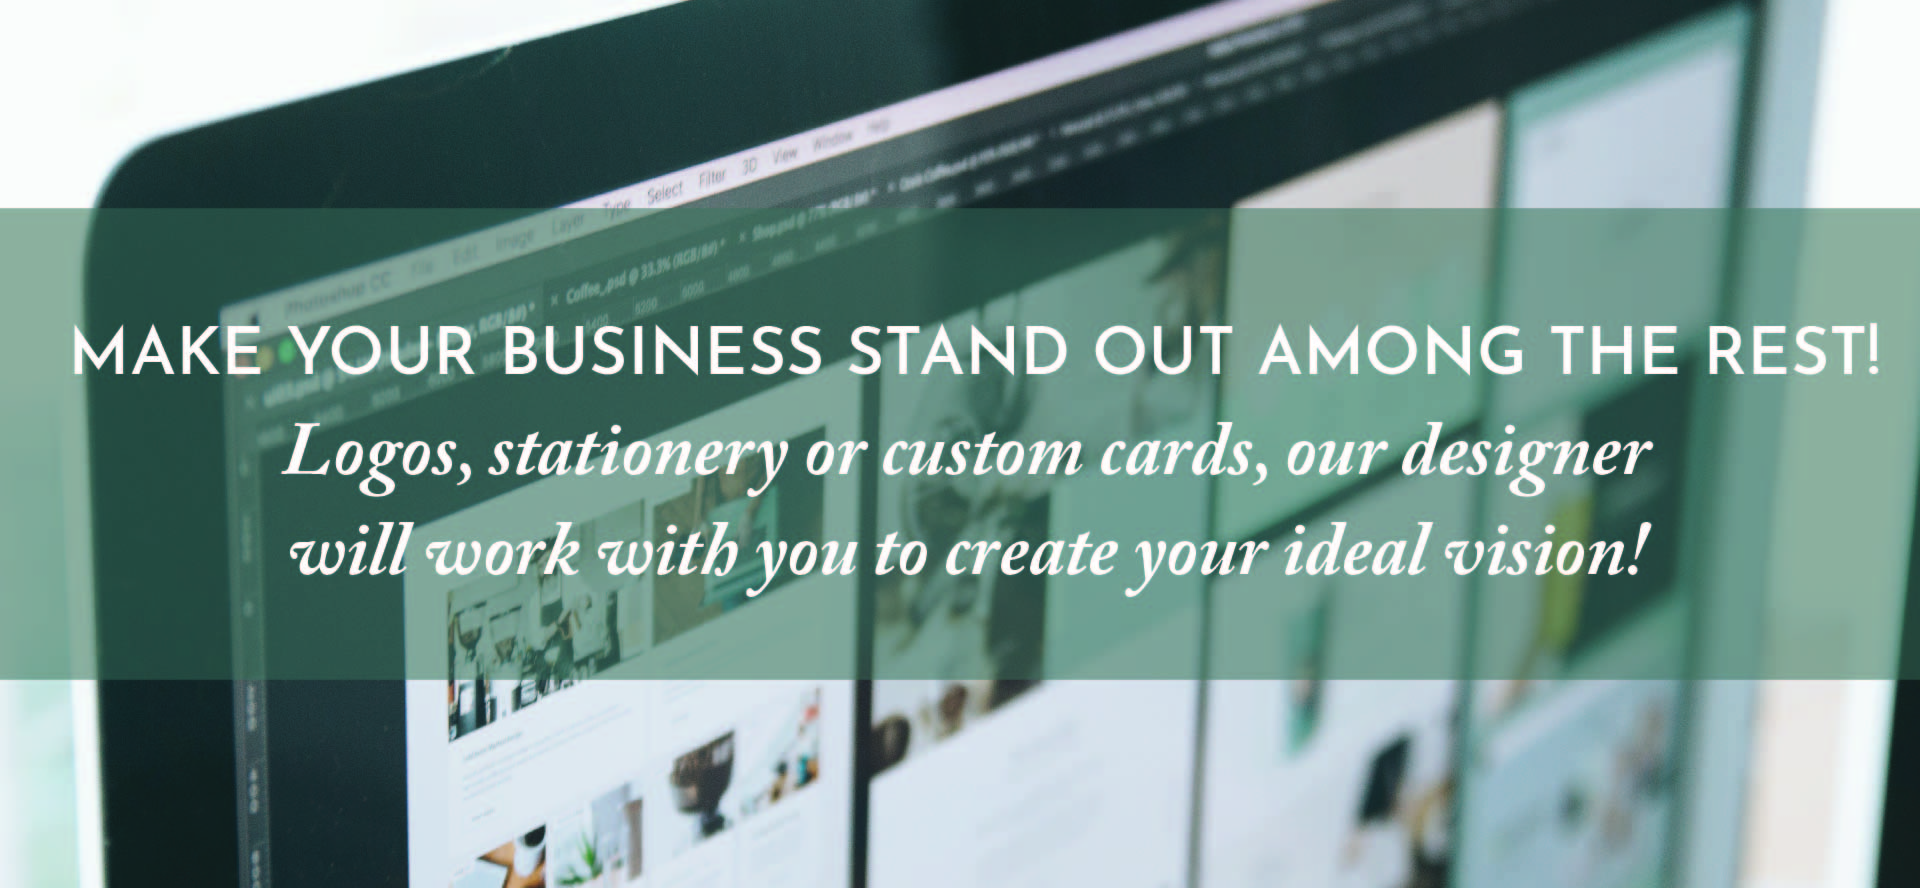 Make Your Business Stand Out